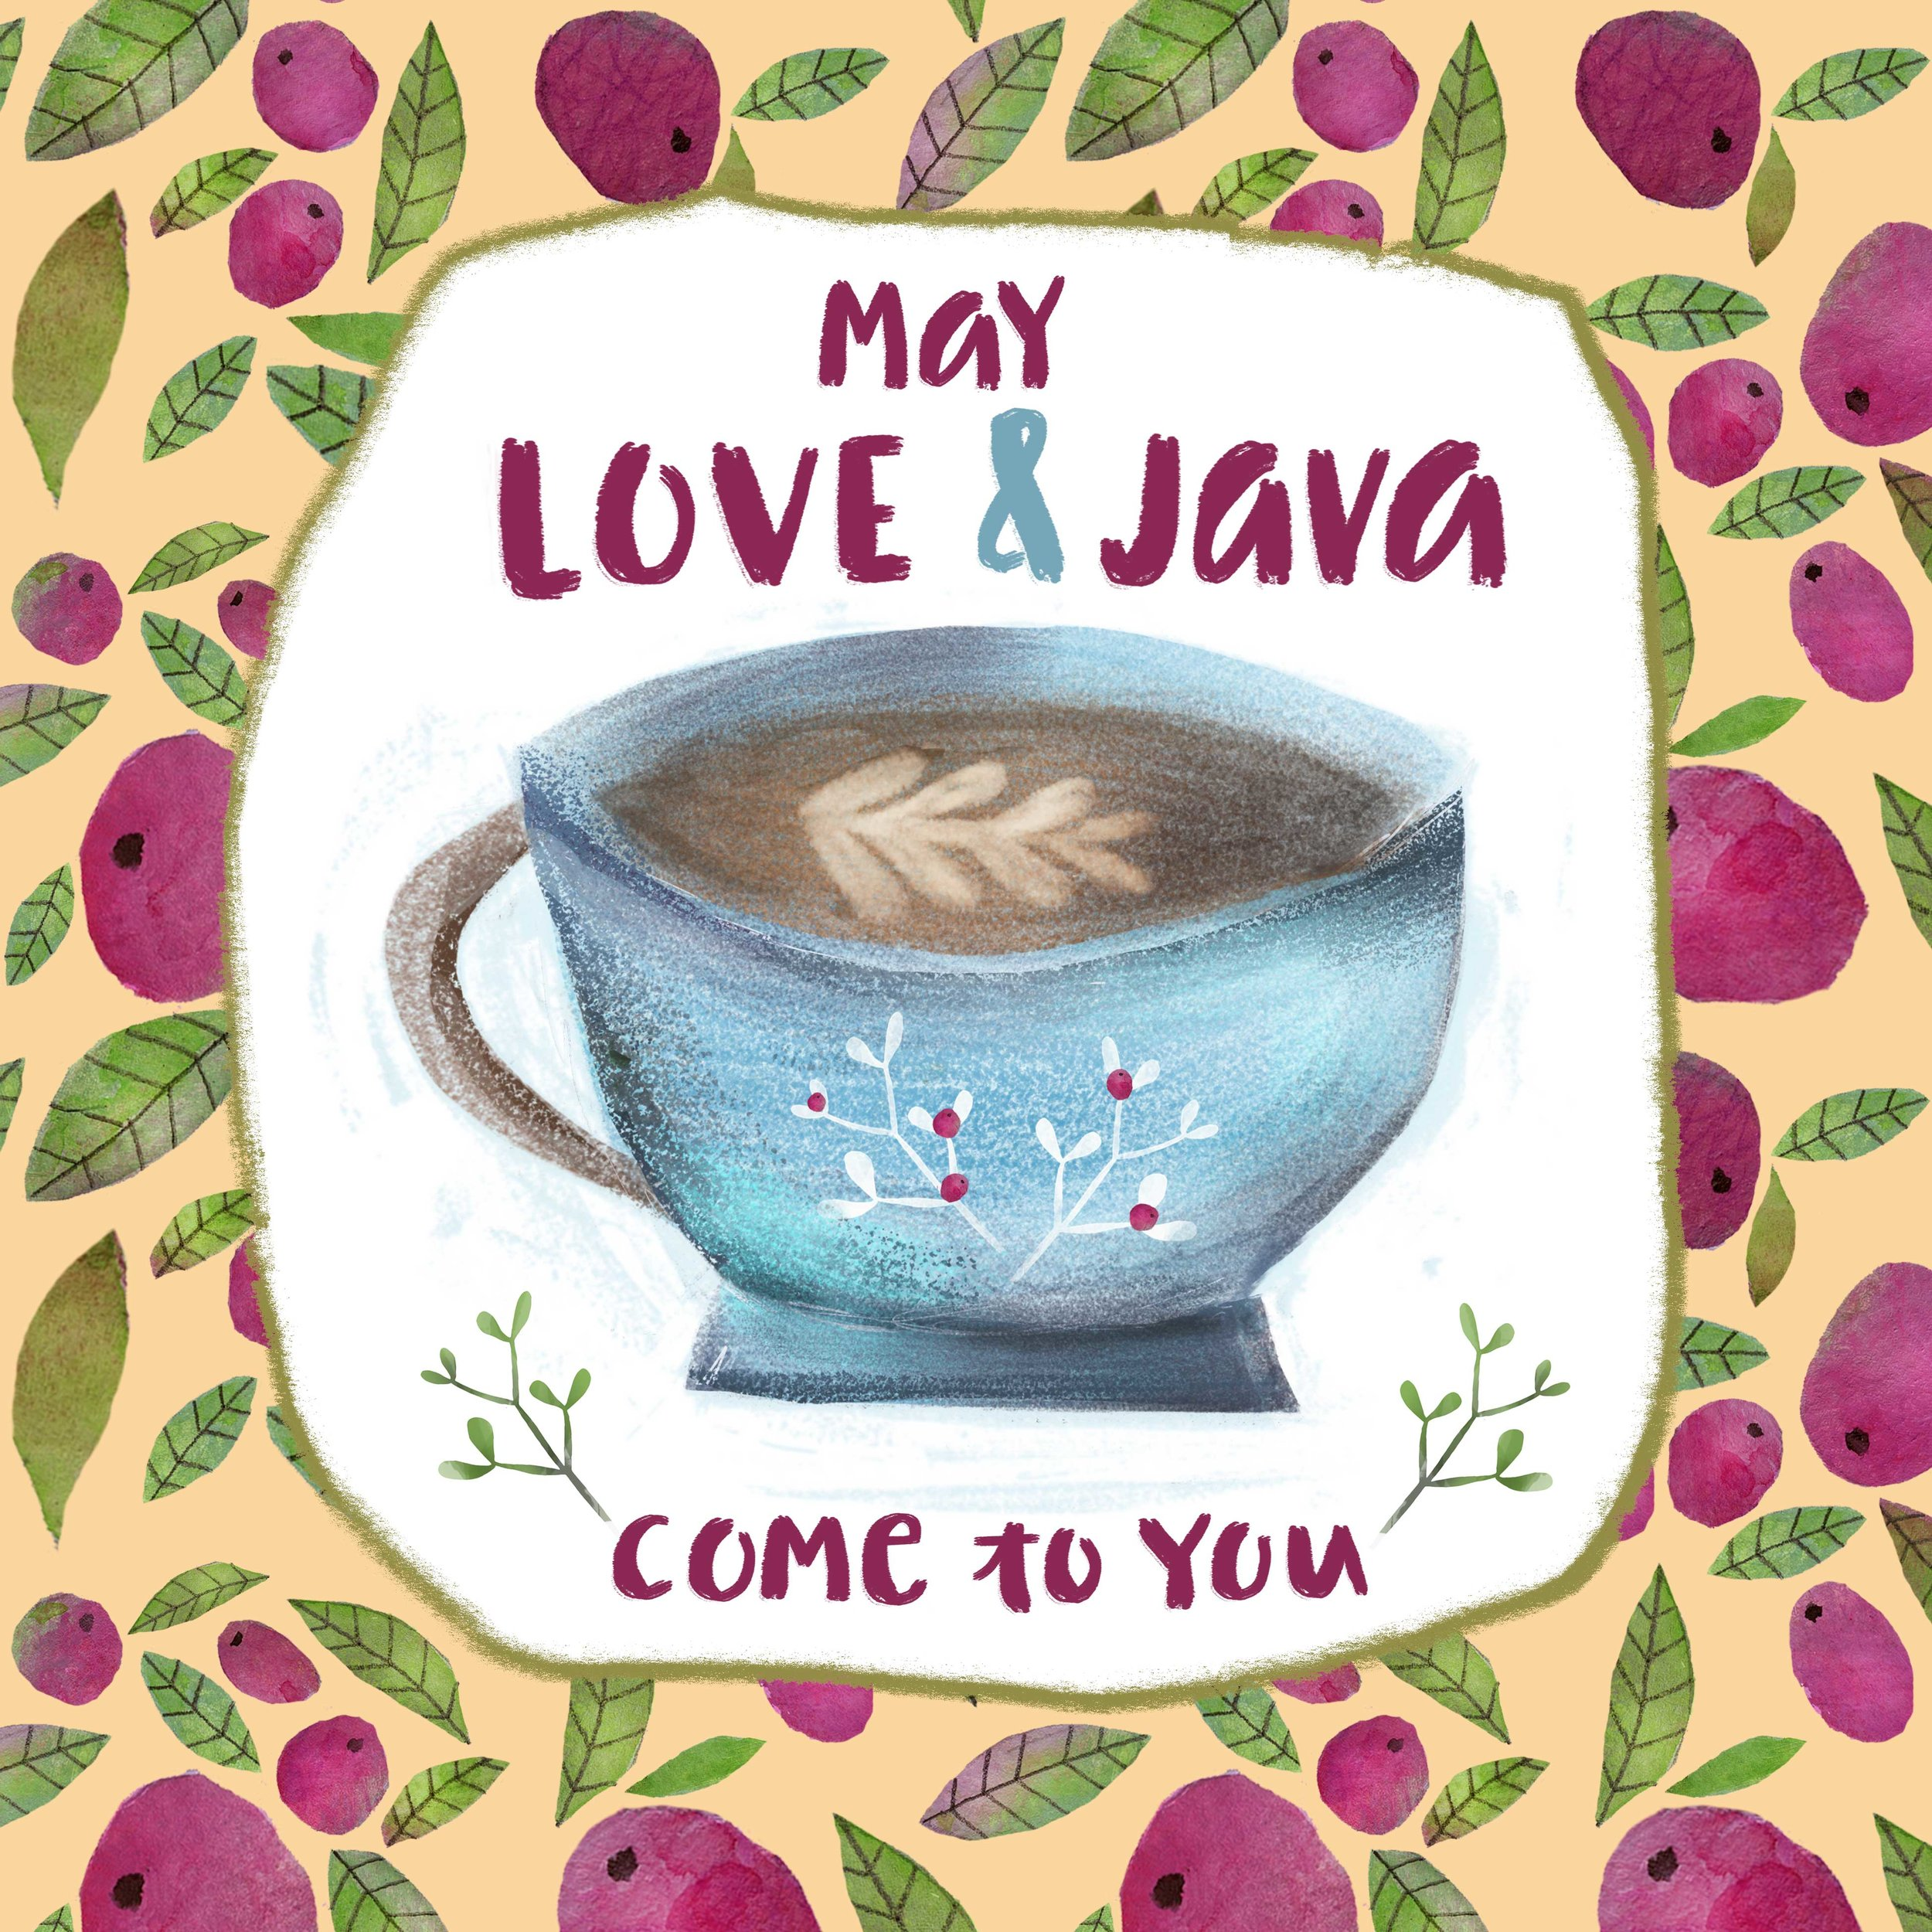 may-love-and-java-come-to-you.jpg